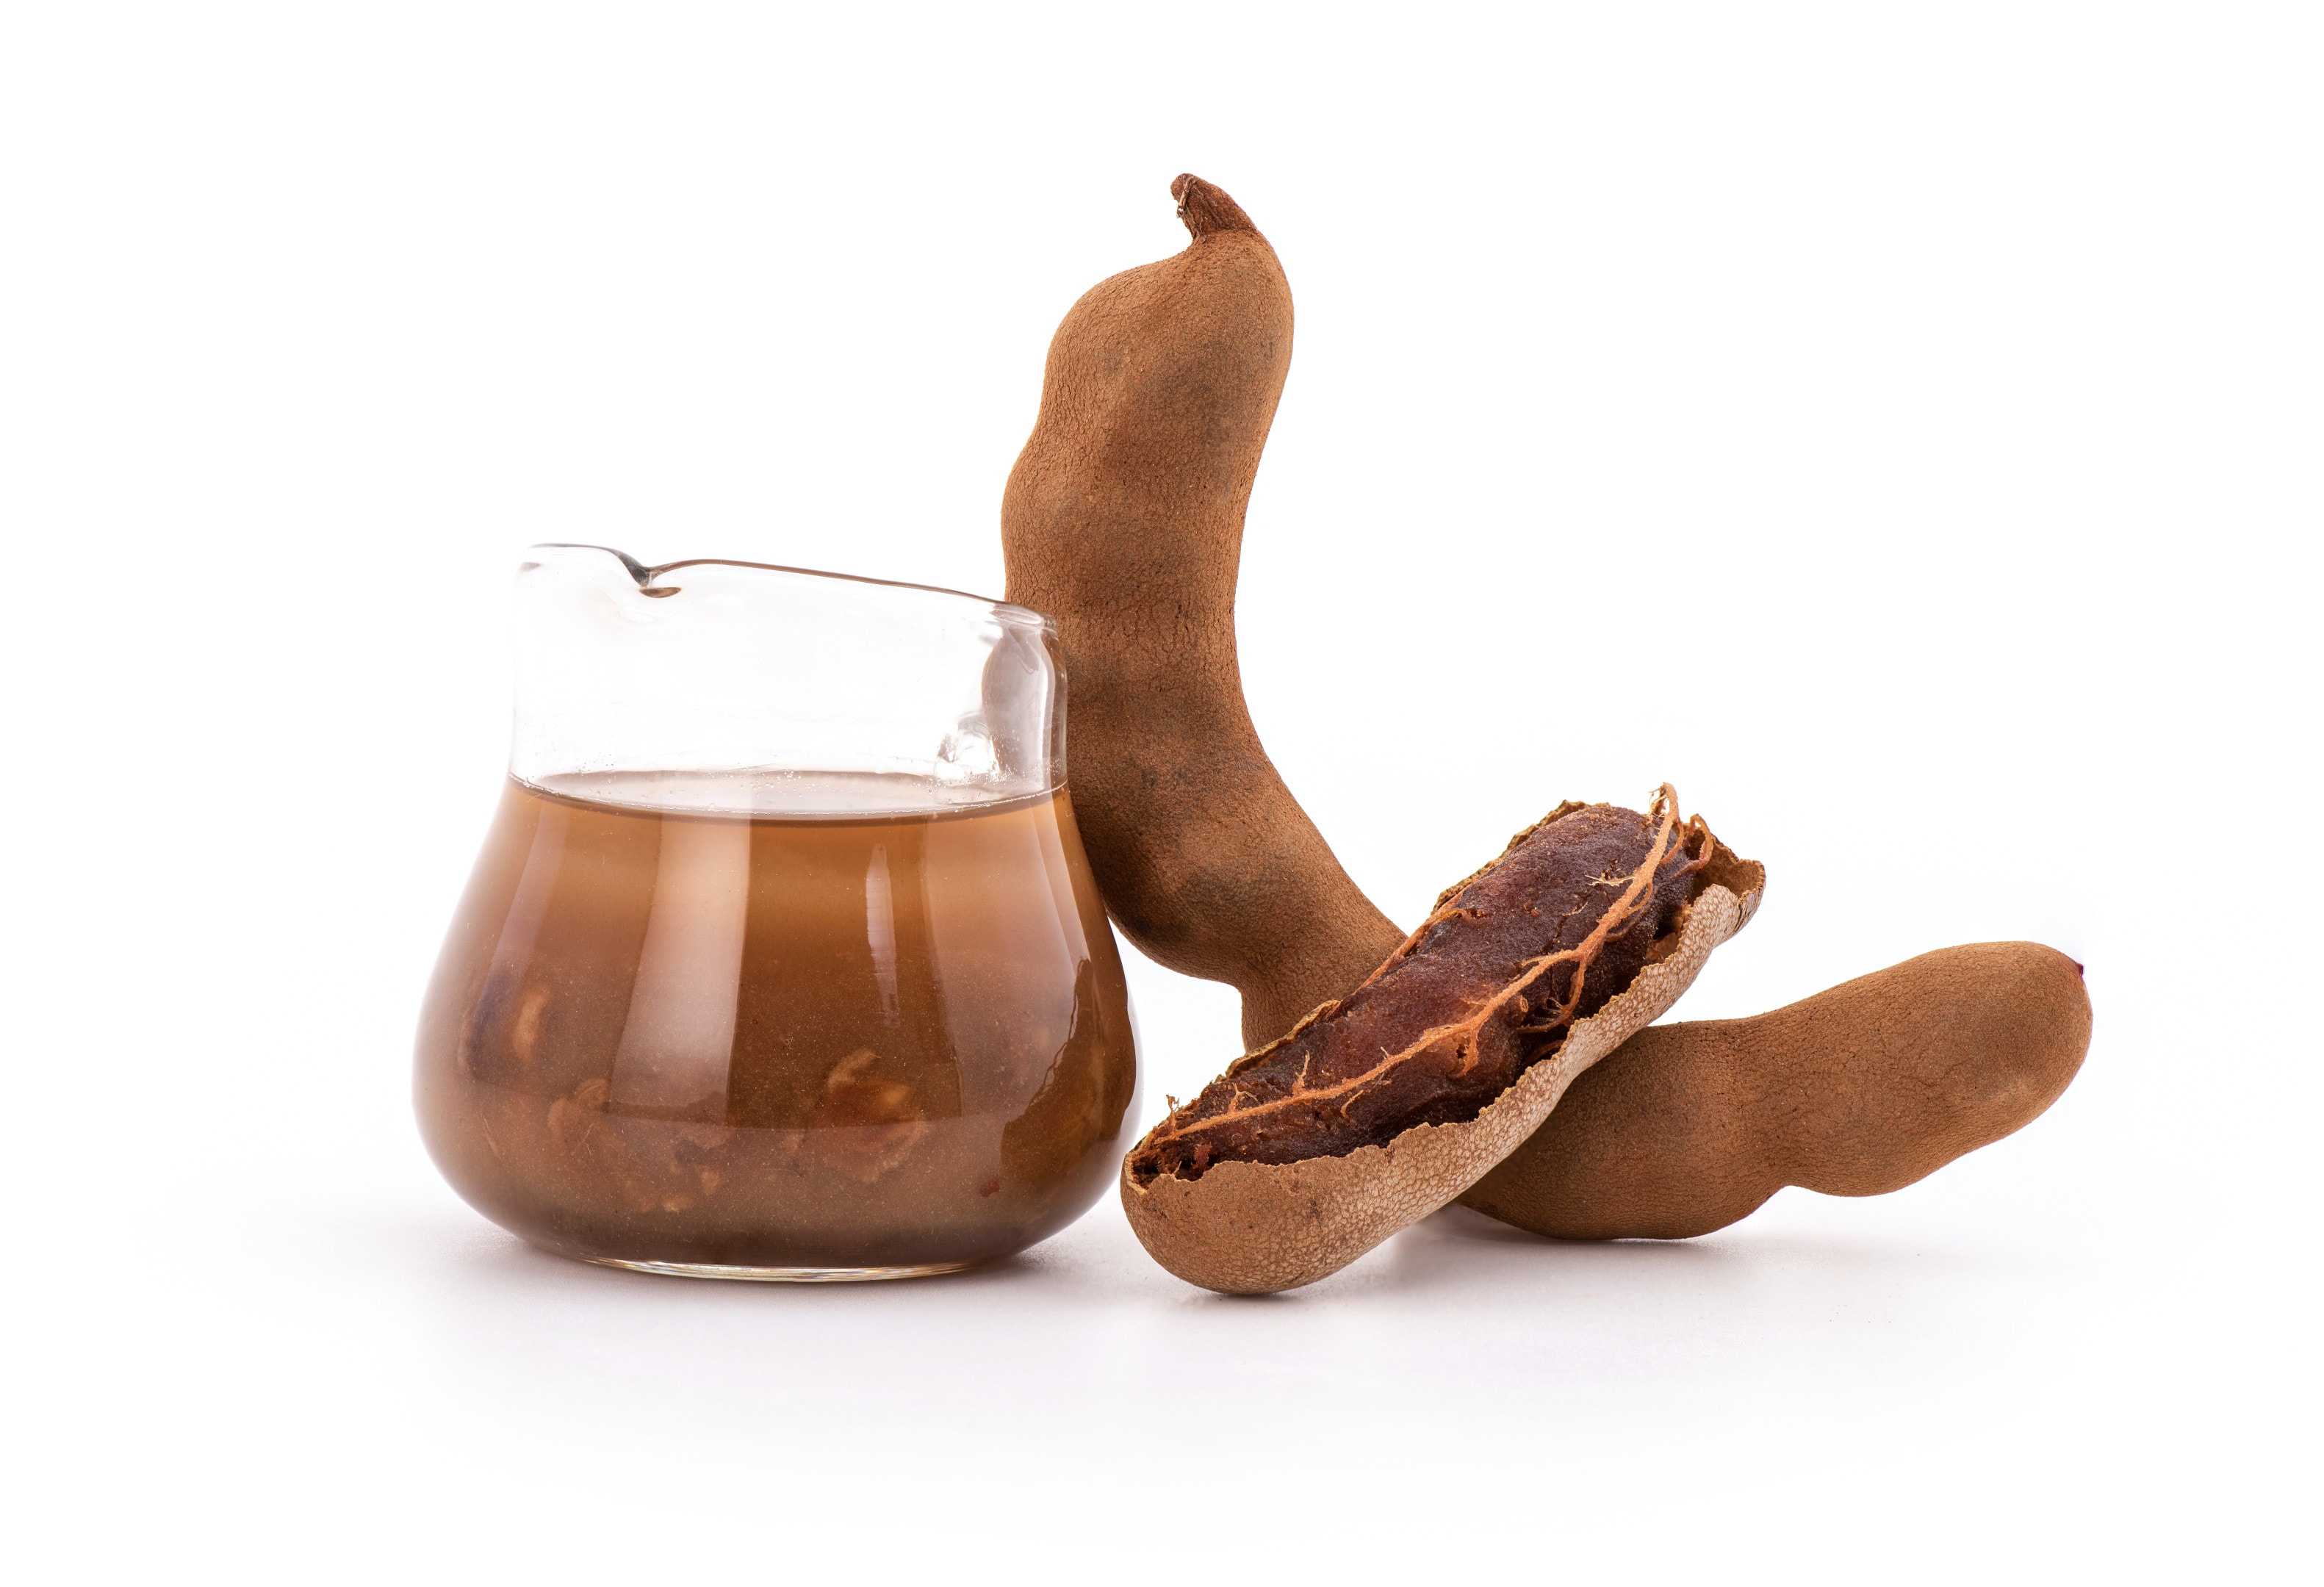 Tamarind fruits with tamarind pulp mixed with water in a glass